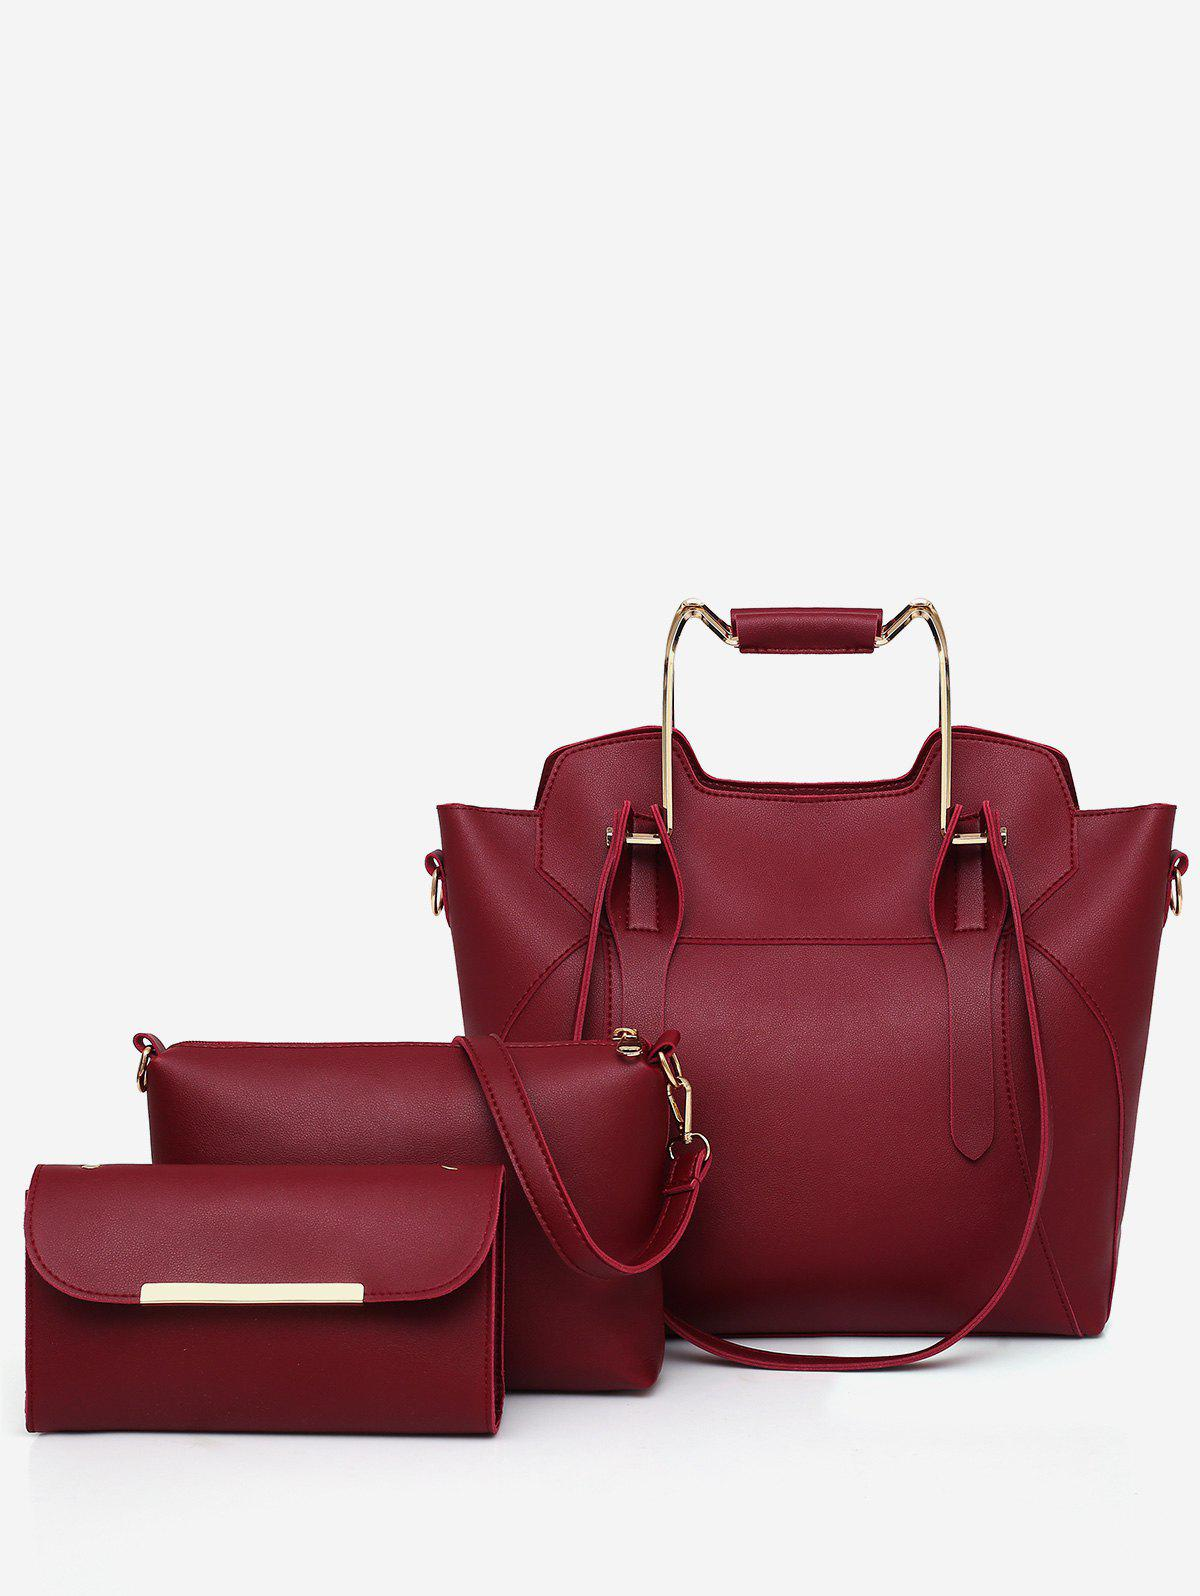 3 Pieces Leisure Metal Handle Chic Tote Bag Set - RED WINE